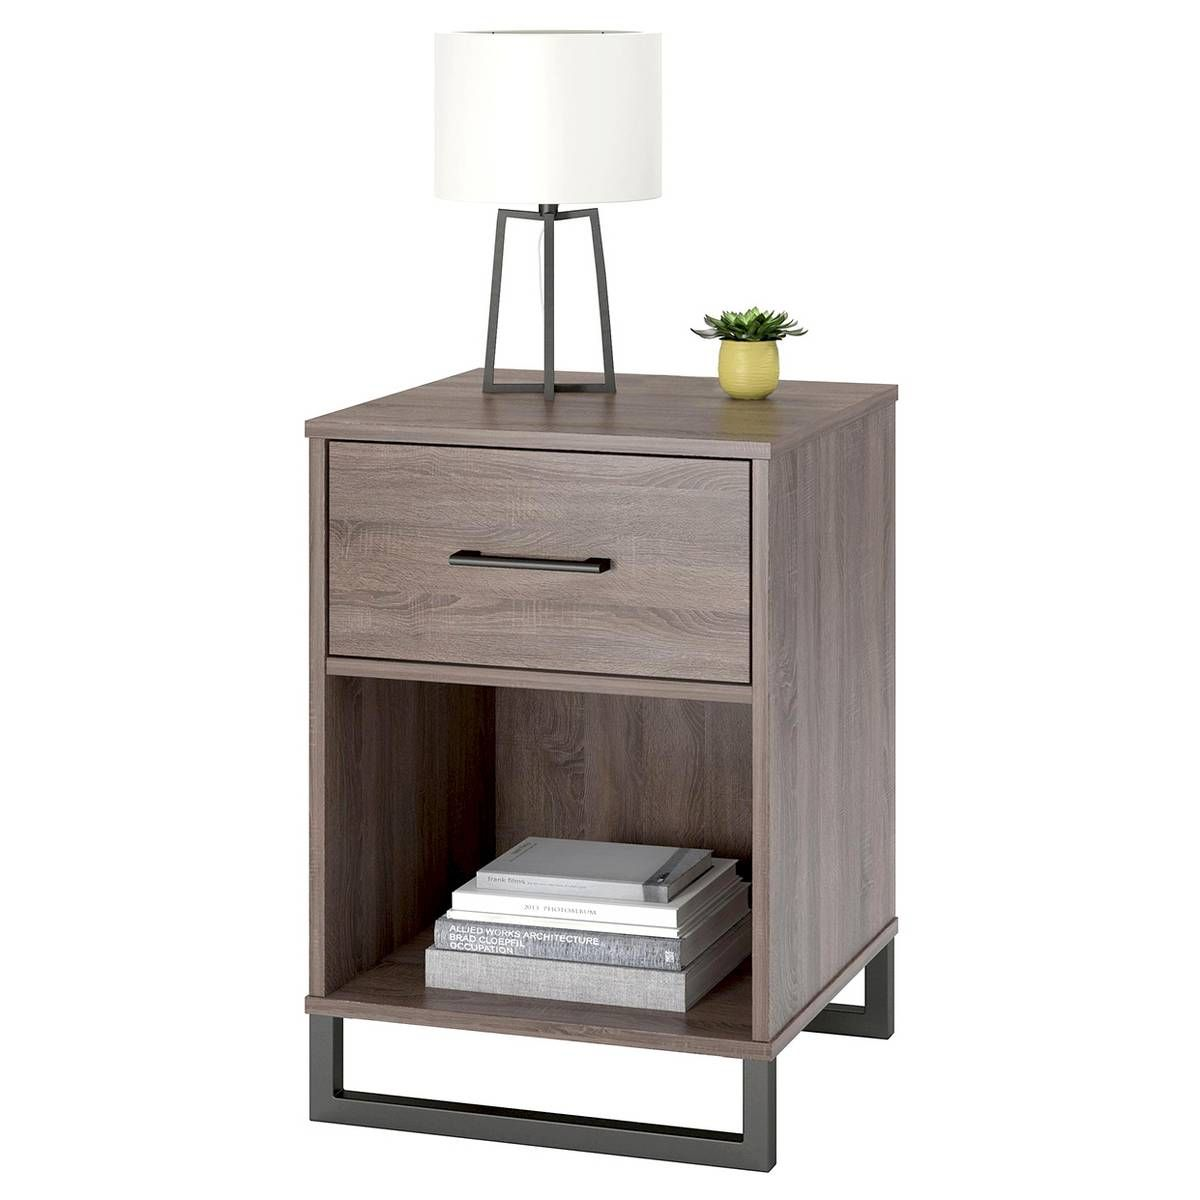 organizer ellie drawer modern heavenly for target liners table autumn assembly quinn combo proof darley pulls dresser changing cool baby clarissa knobs accent full size white side